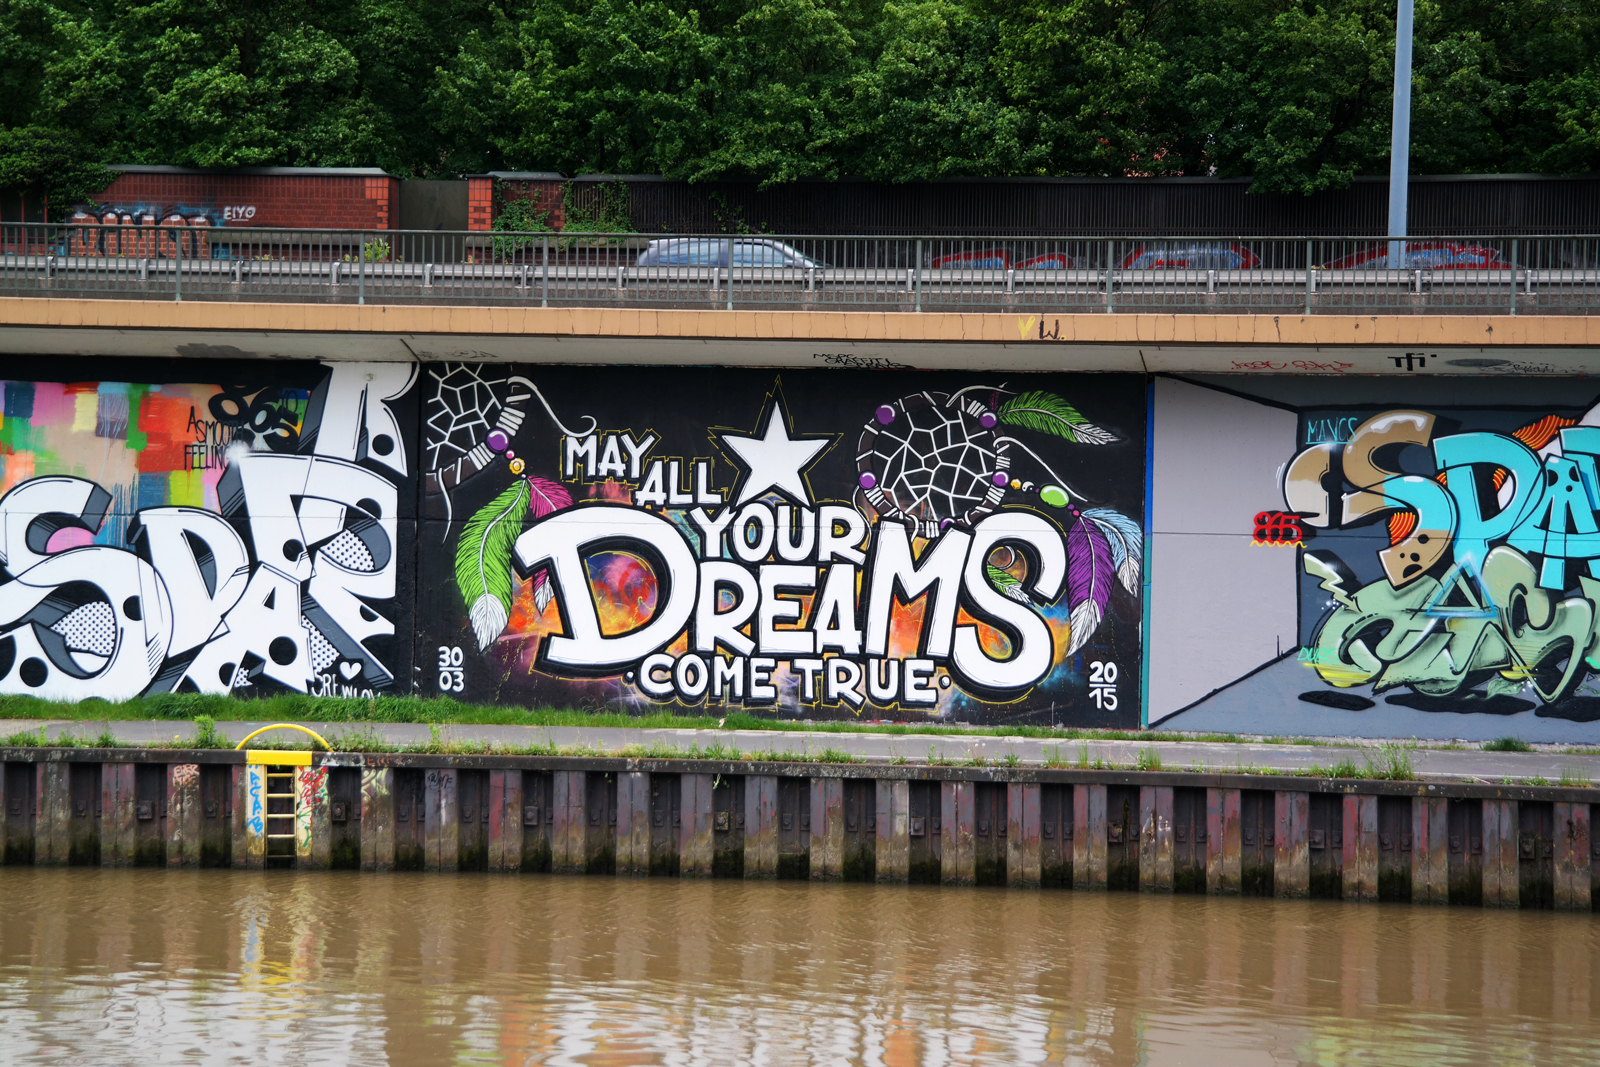 May all your dreams come true street art graffiti Saarbrücken Sarrebruck tourisme festival Perspectives photo usofparis blog